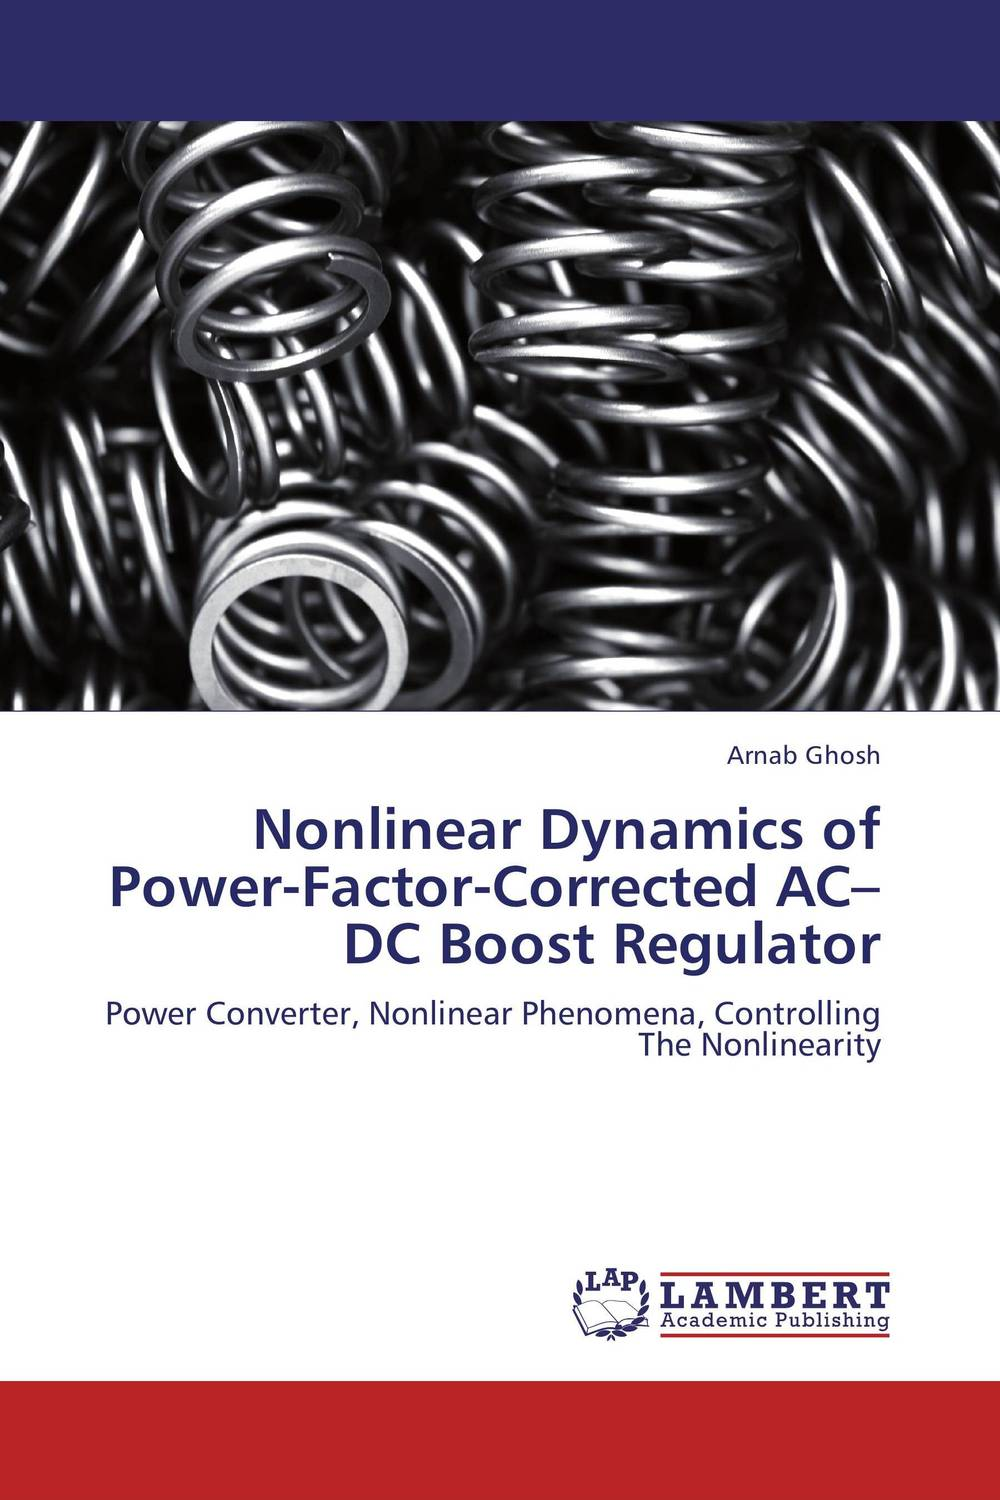 Nonlinear Dynamics of Power-Factor-Corrected AC–DC Boost Regulator